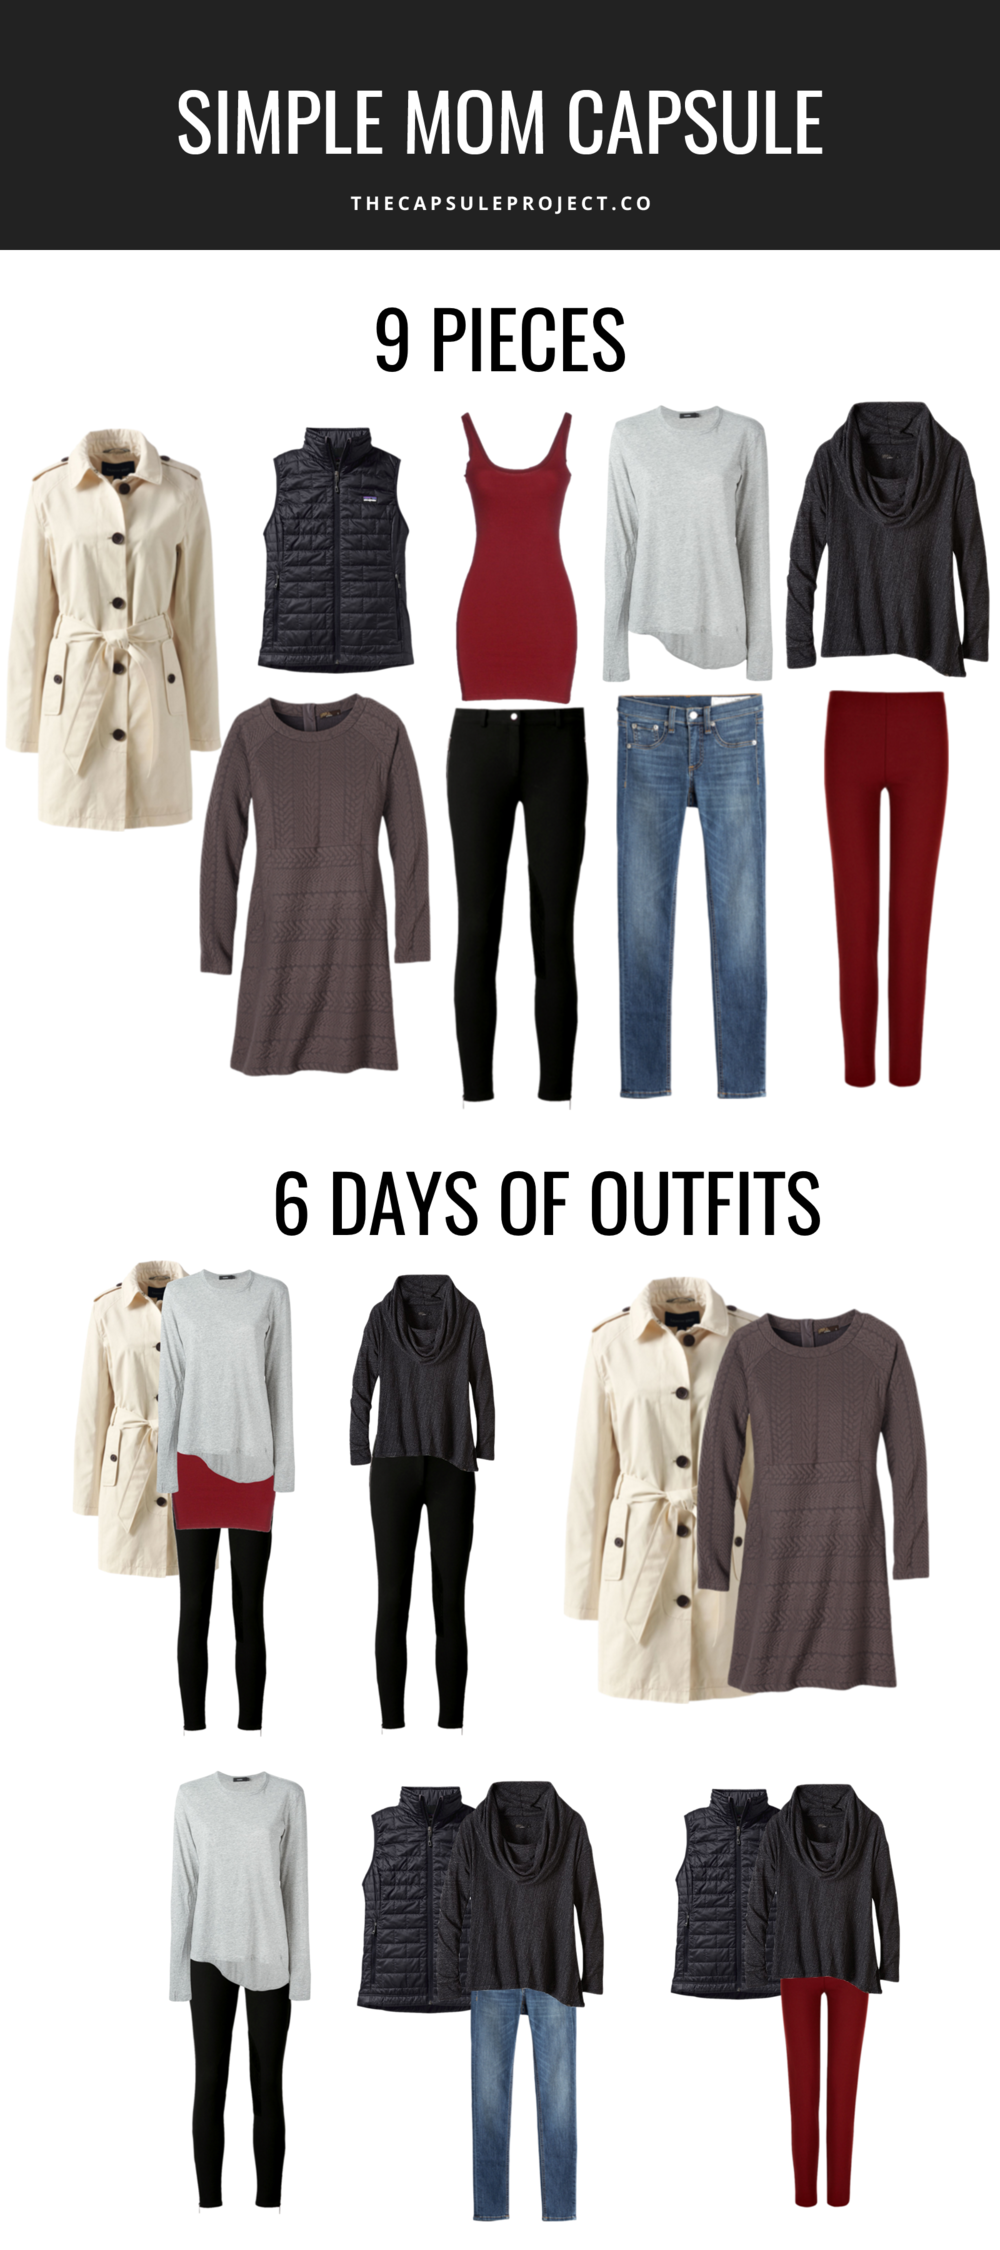 Simple 9 Piece Mom Capsule Wardrobe